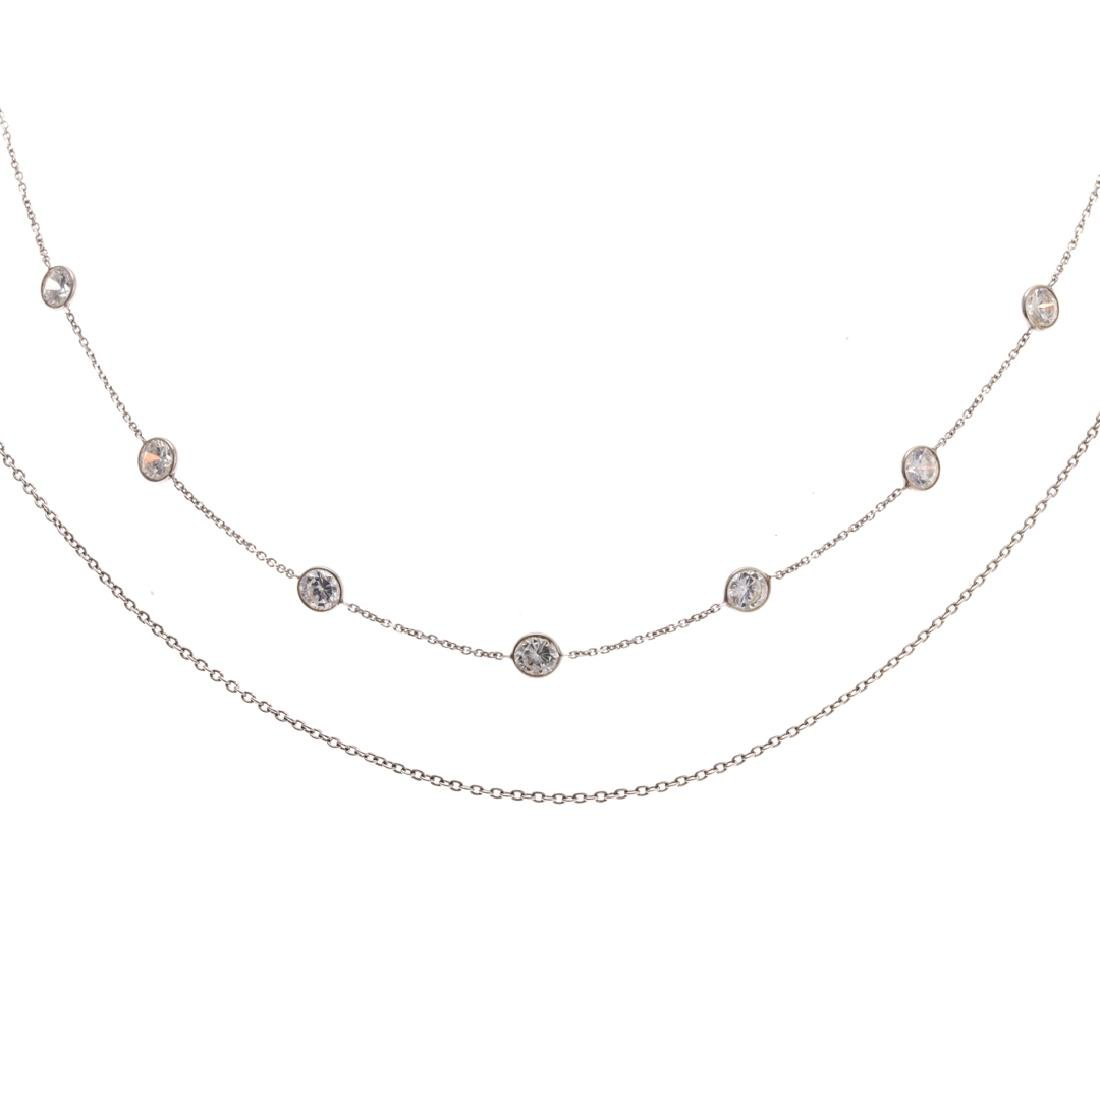 Two Lady's 14K White Gold Necklaces